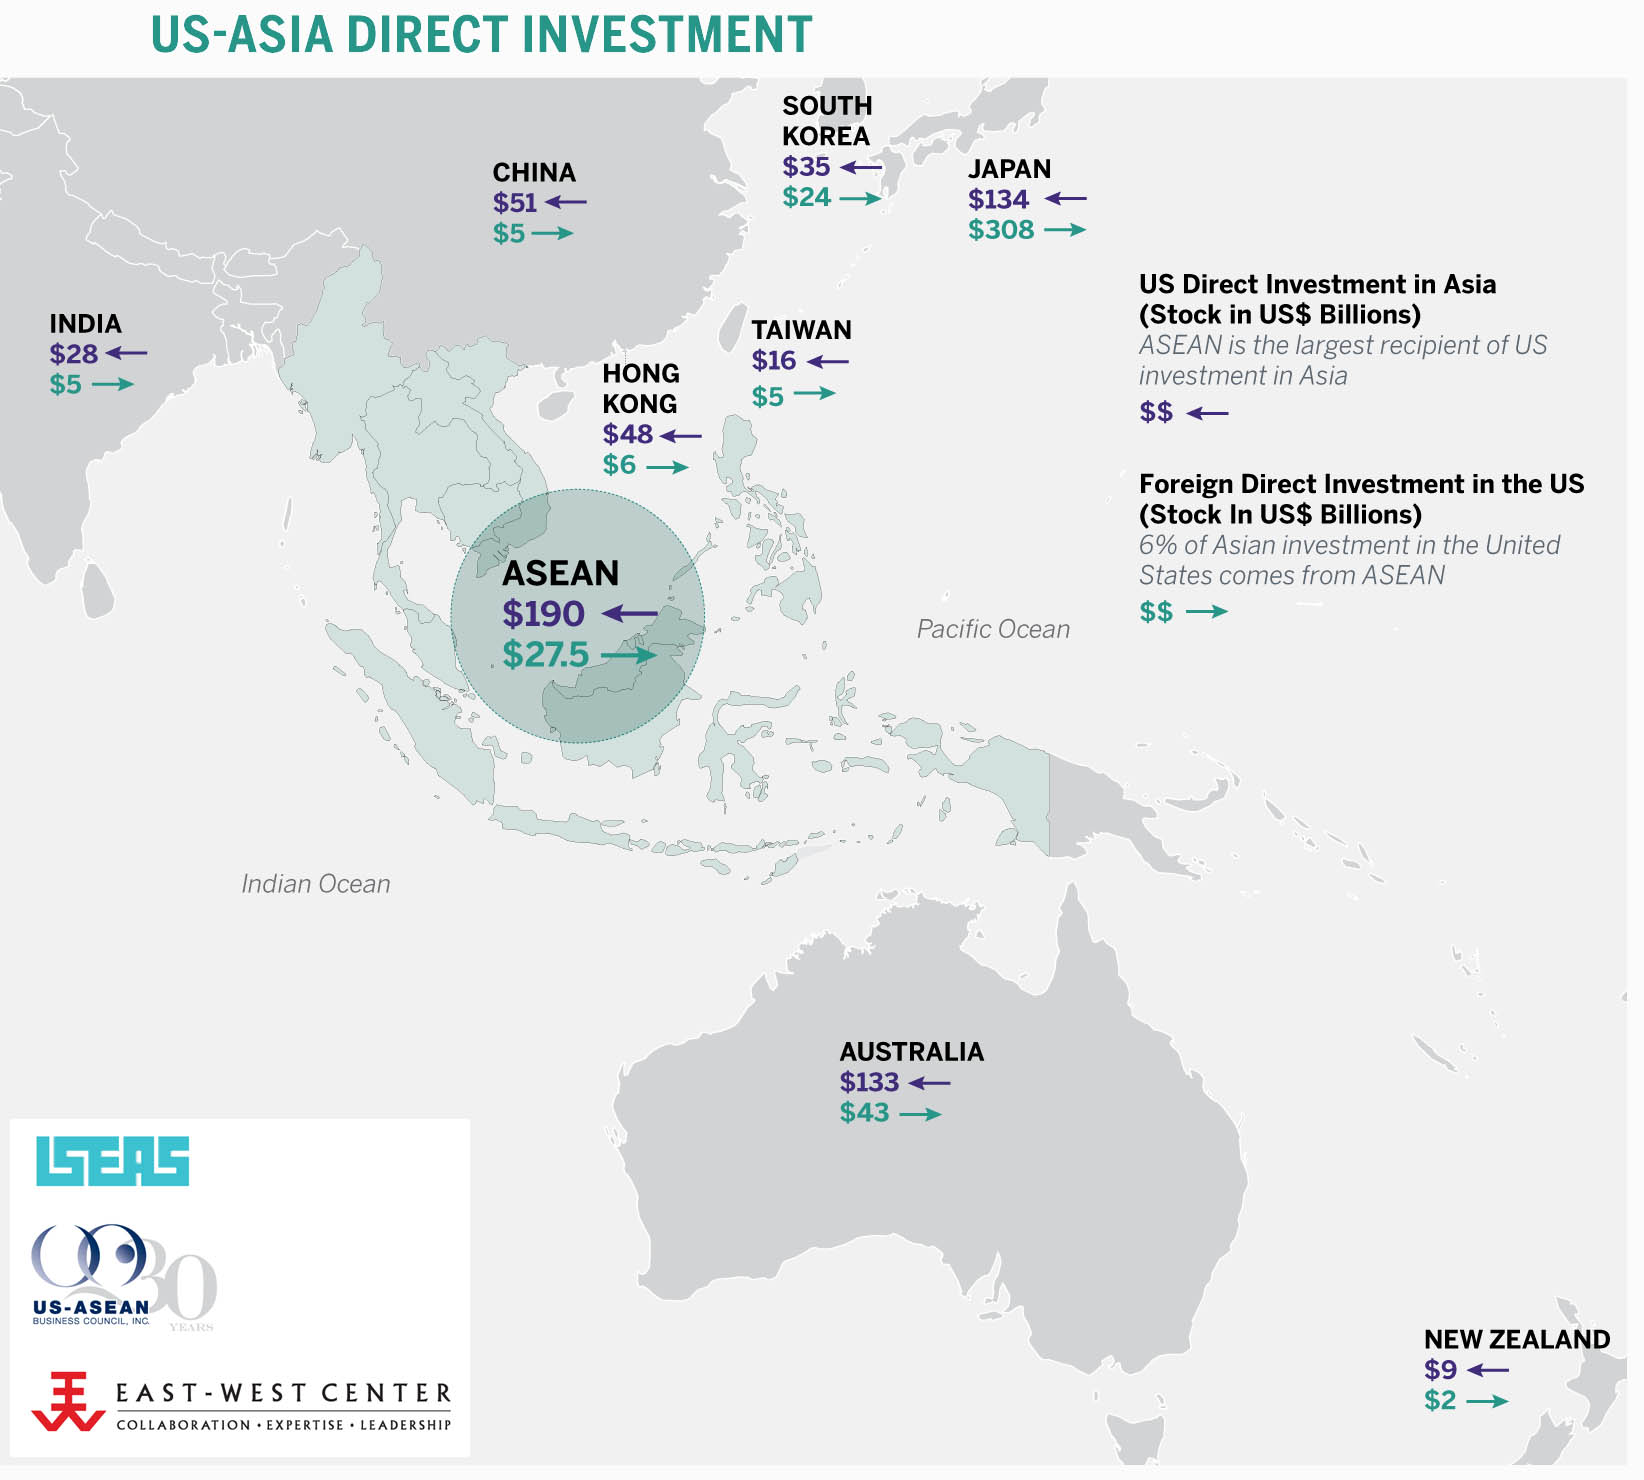 asean is the largest recipient of us investment in asia and singapore accounts for the vast majority of fdi to the us from asean image asean matters for